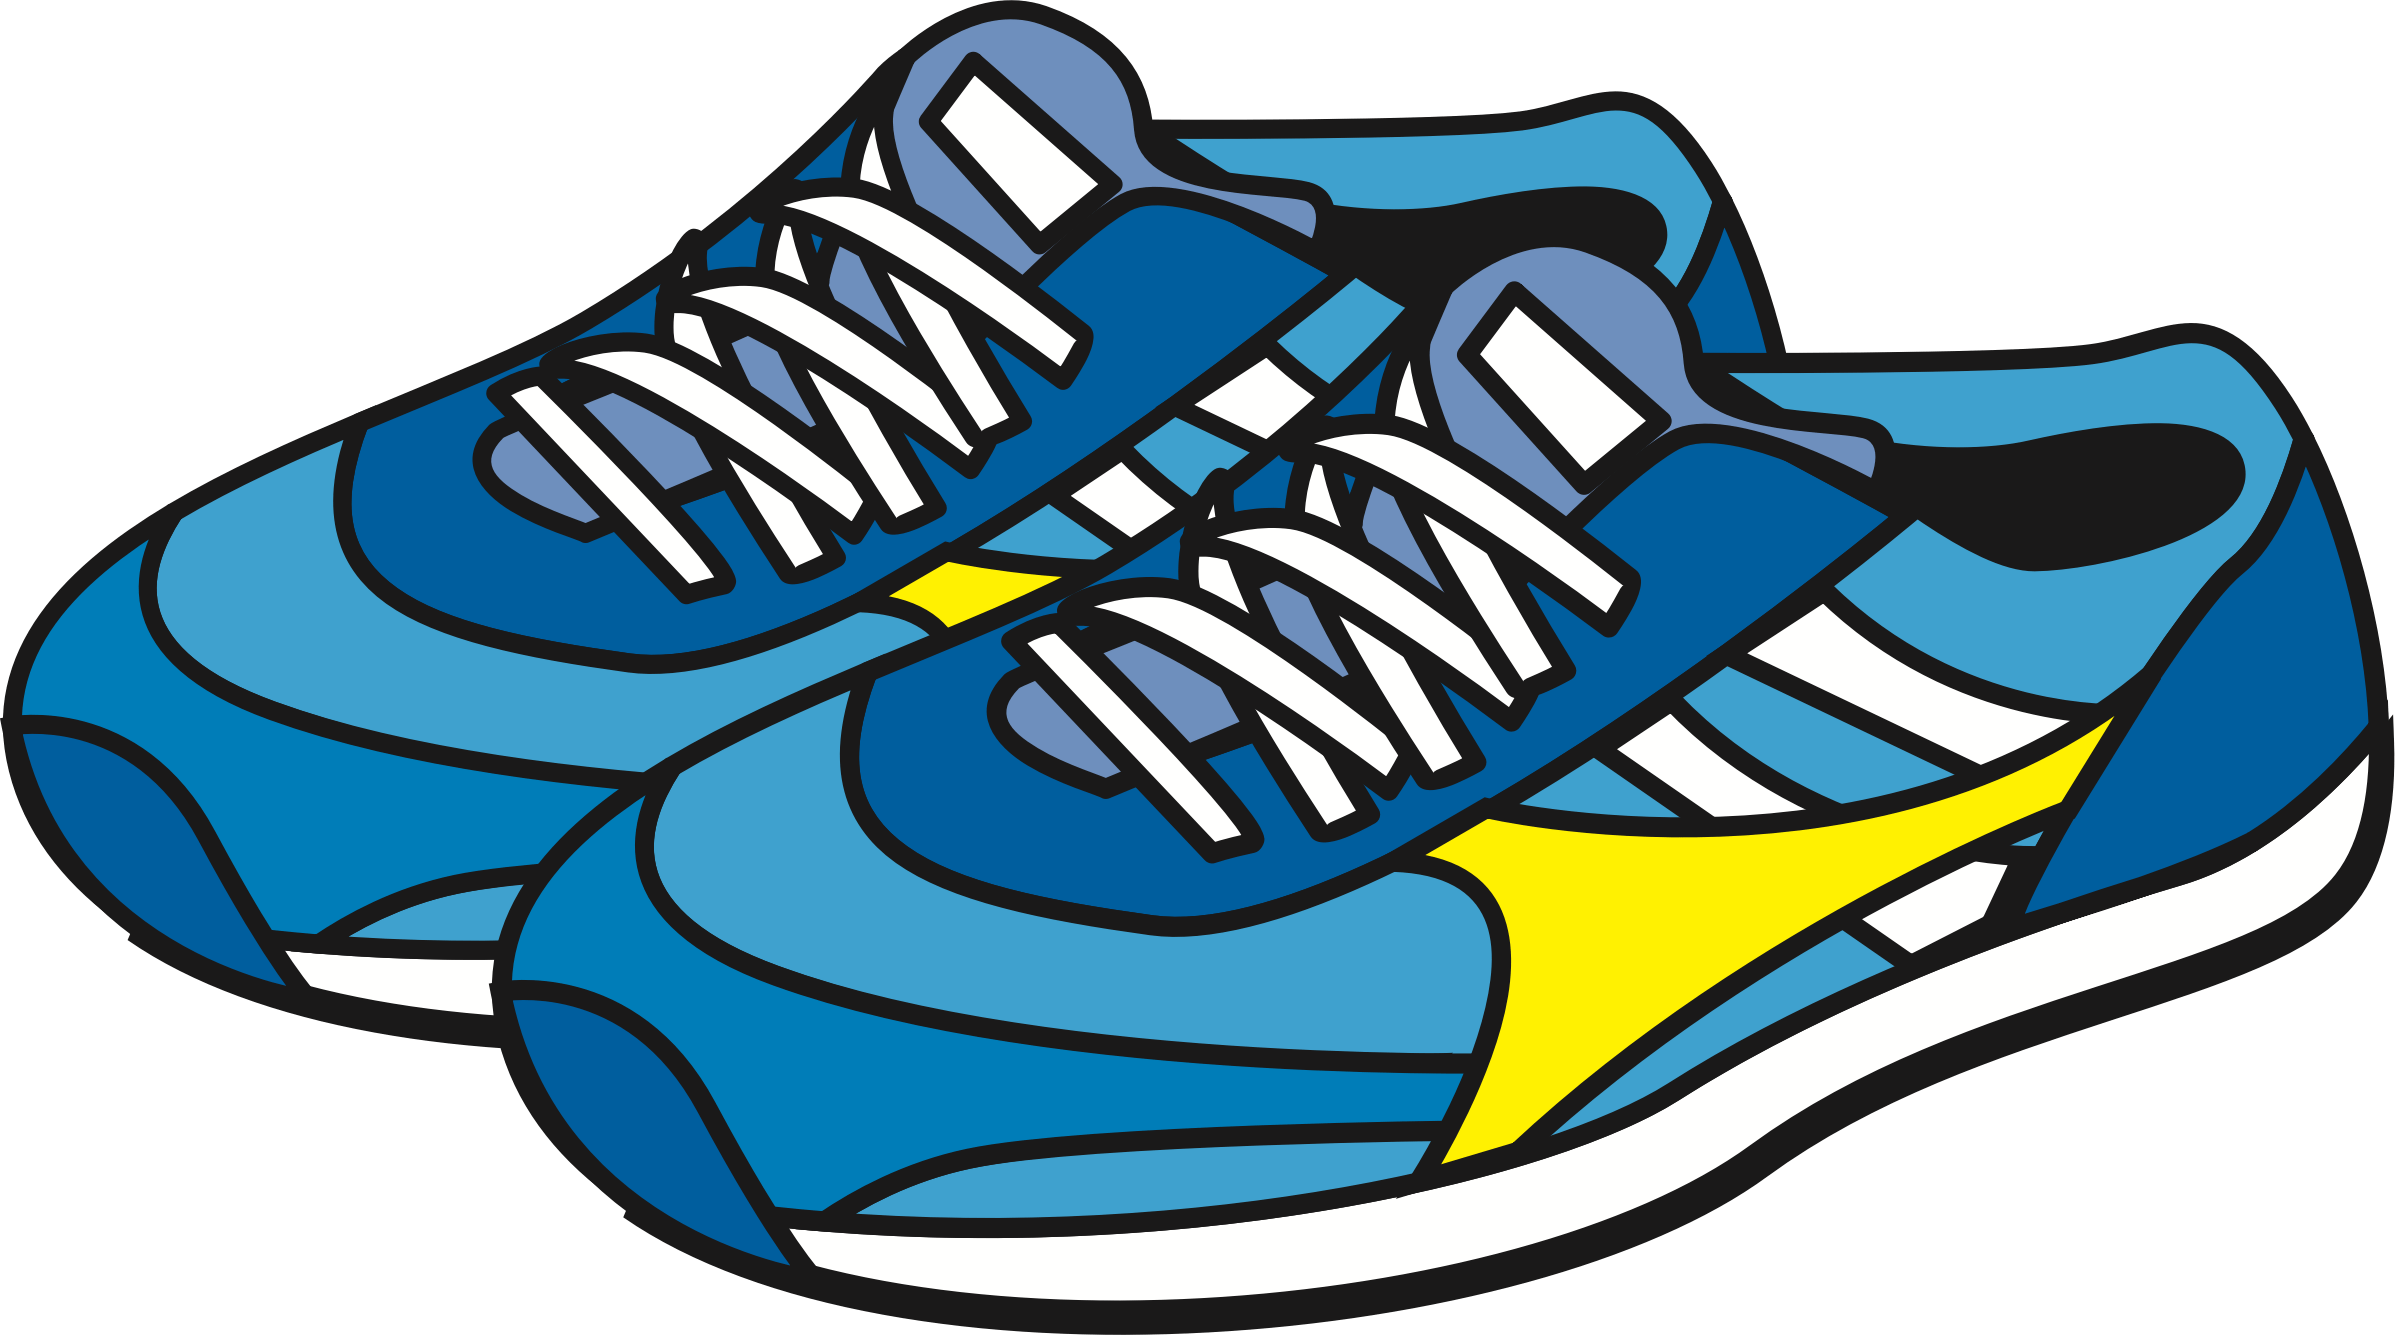 Boys shoes clipart image free stock Sneakers Clipart Big Shoe Free On Cartoon Image For Baby Boys Shoes ... image free stock